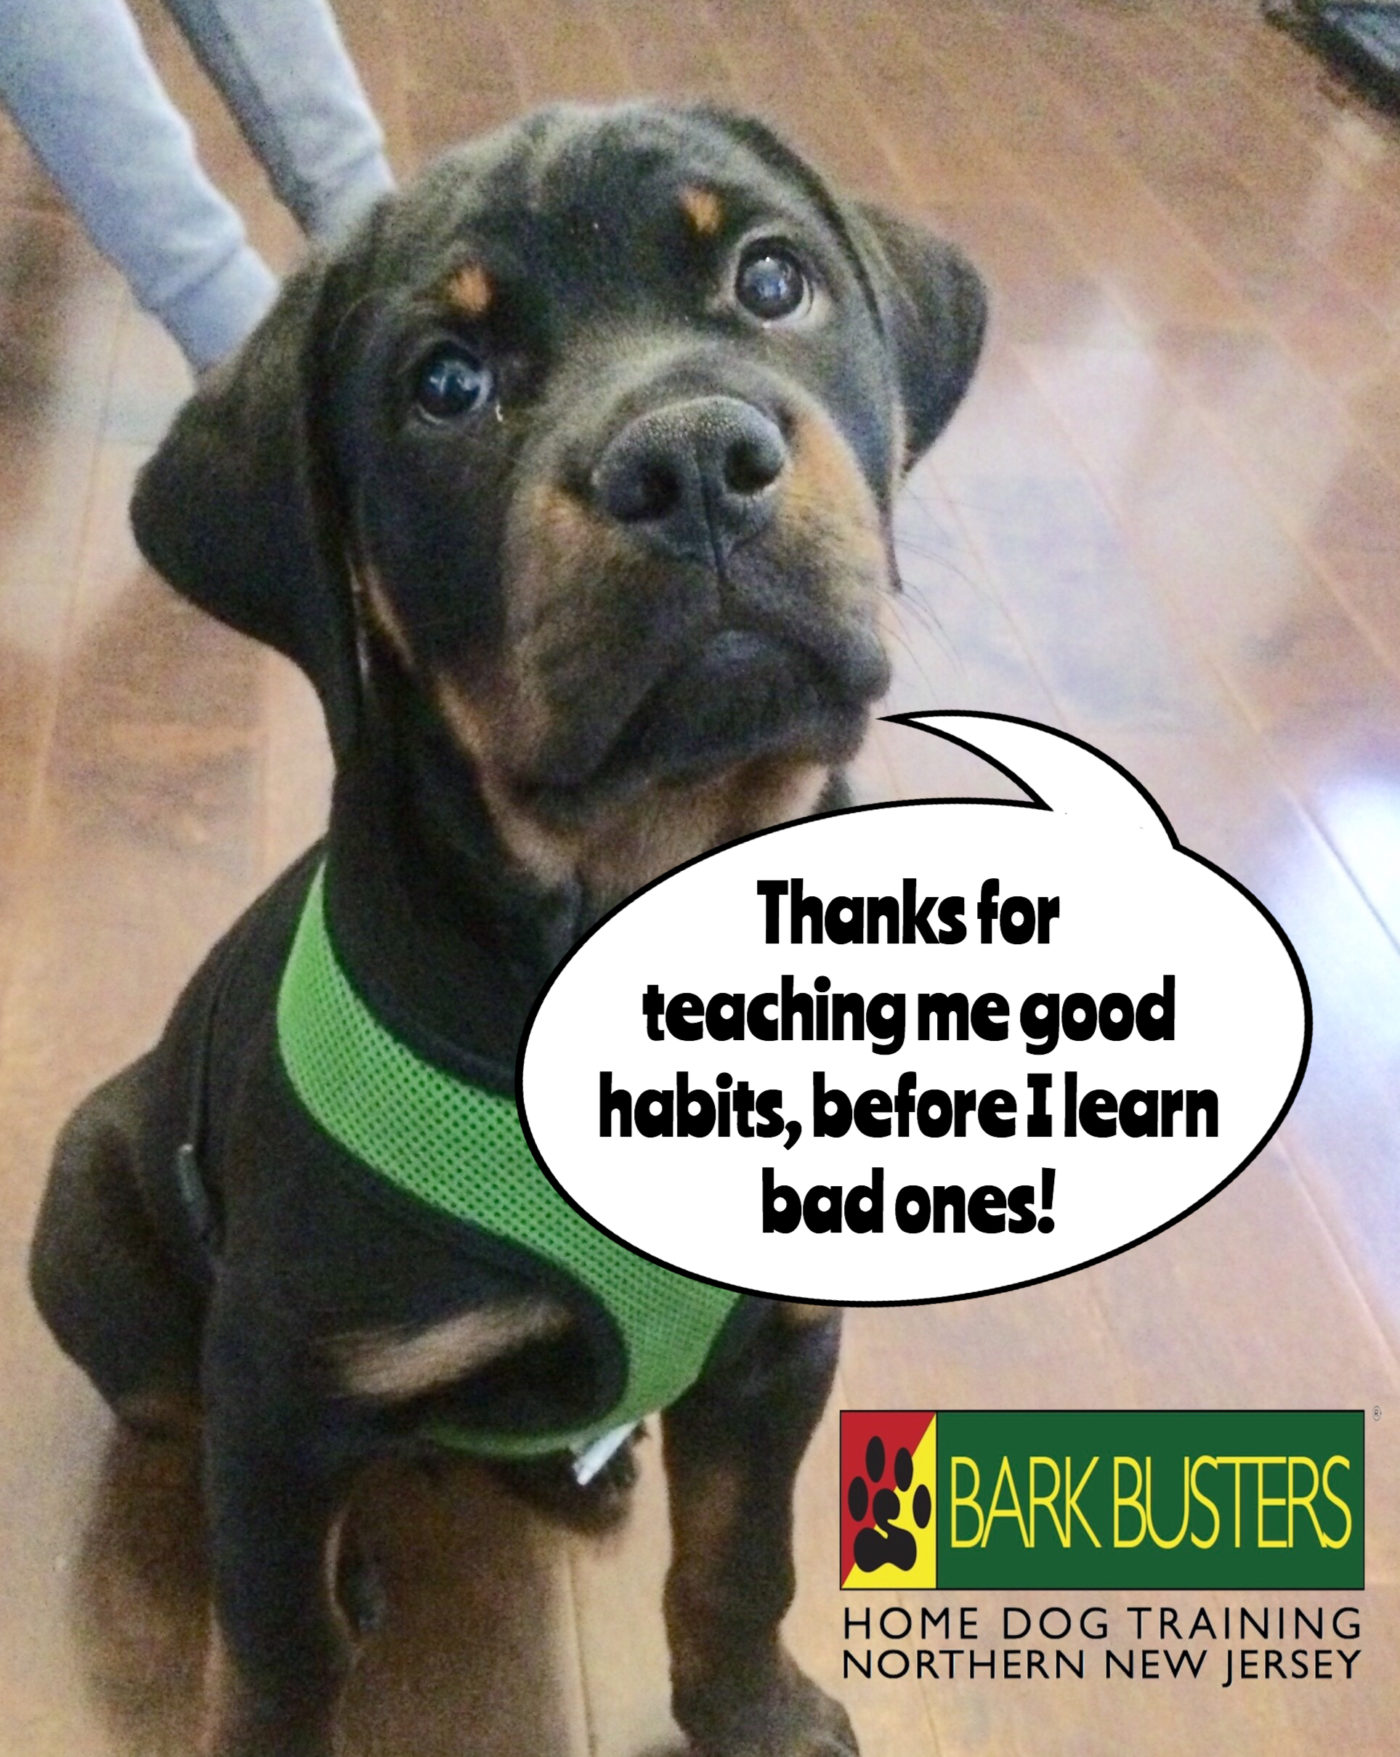 #BarkBusters #dogtraining #dogtrainerNorthernNewJersey #speakdog #dogs #puppies #HappyDogsHappyFamilies #Rottweiler #dogsOfBarkBusters #Bogota